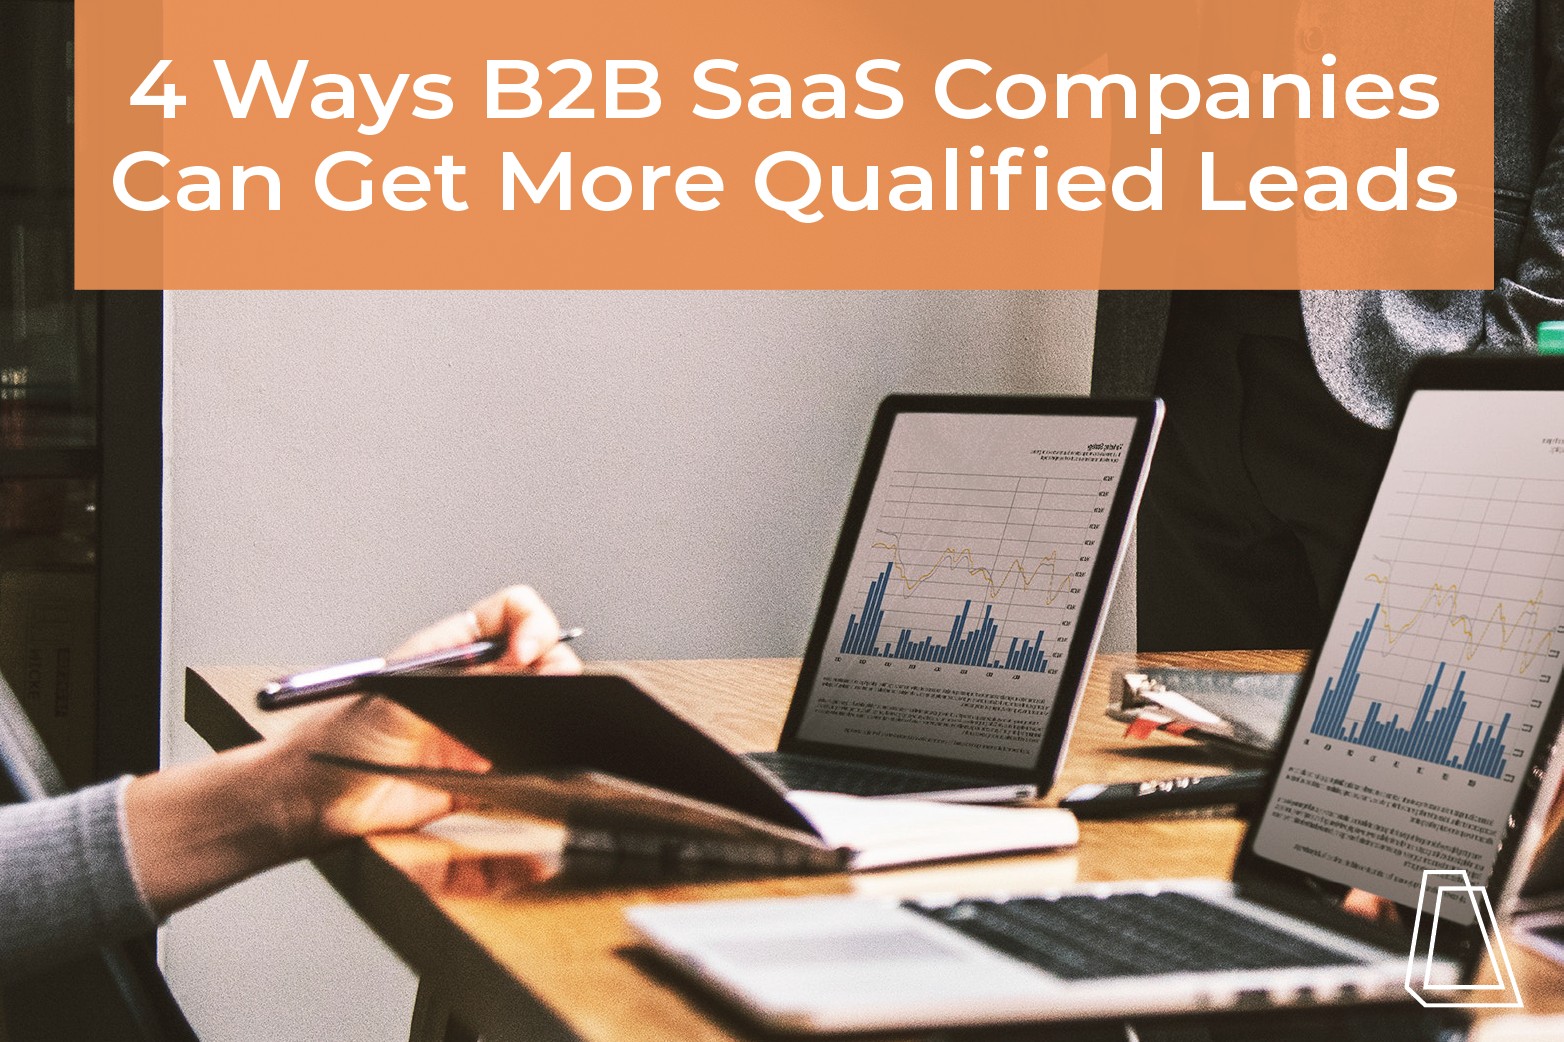 4 WAYS B2B SAAS COMPANIES CAN GET MORE QUALIFIED LEADS